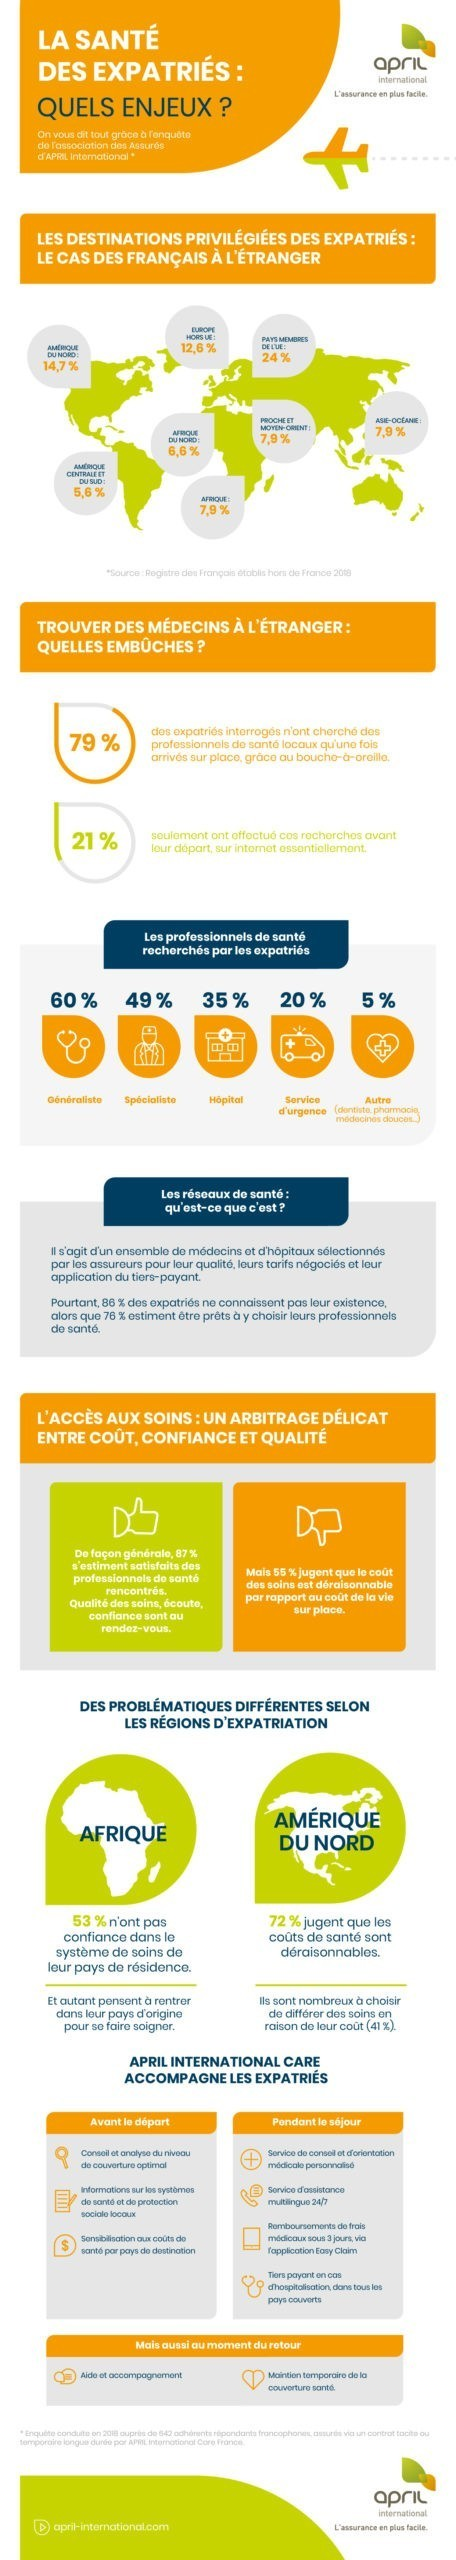 Infographie Barometre Sante April International